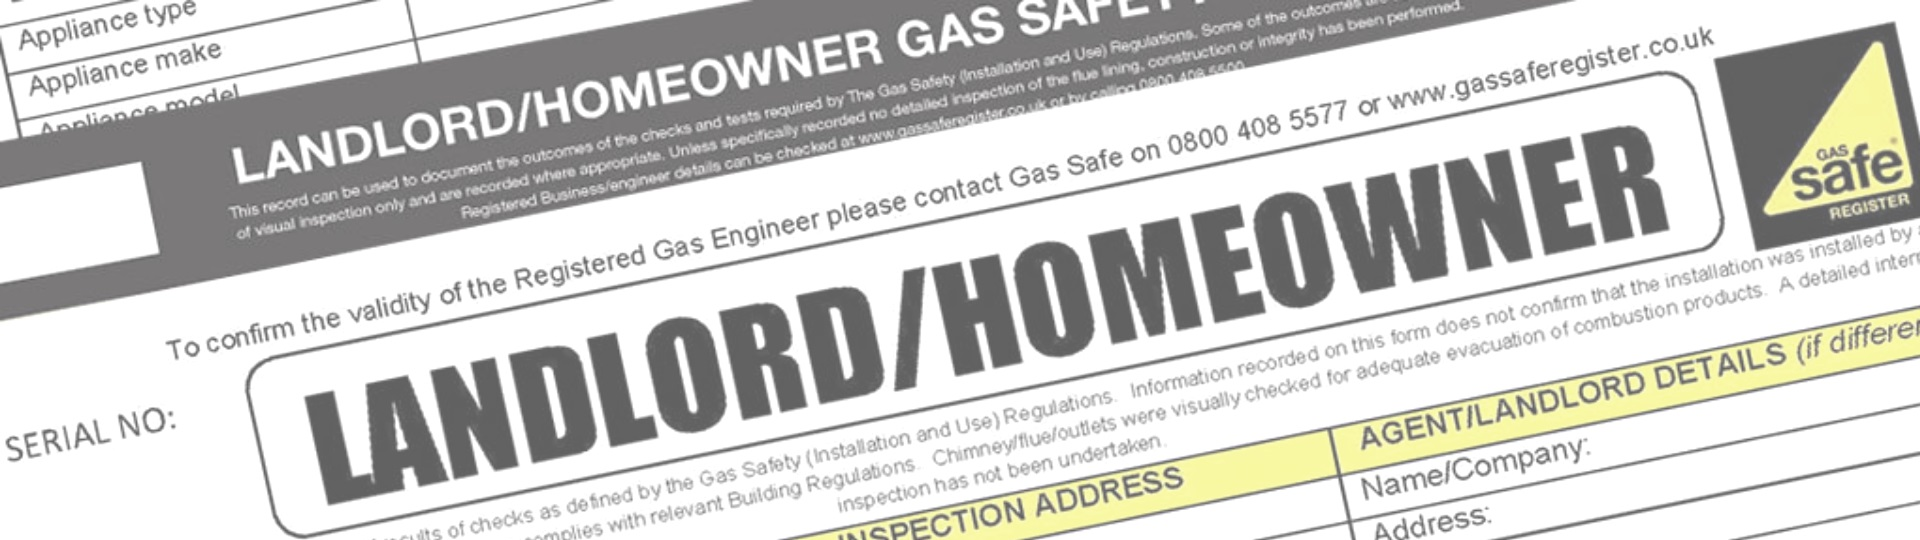 Gas Saftey Certificates Bromley Heath